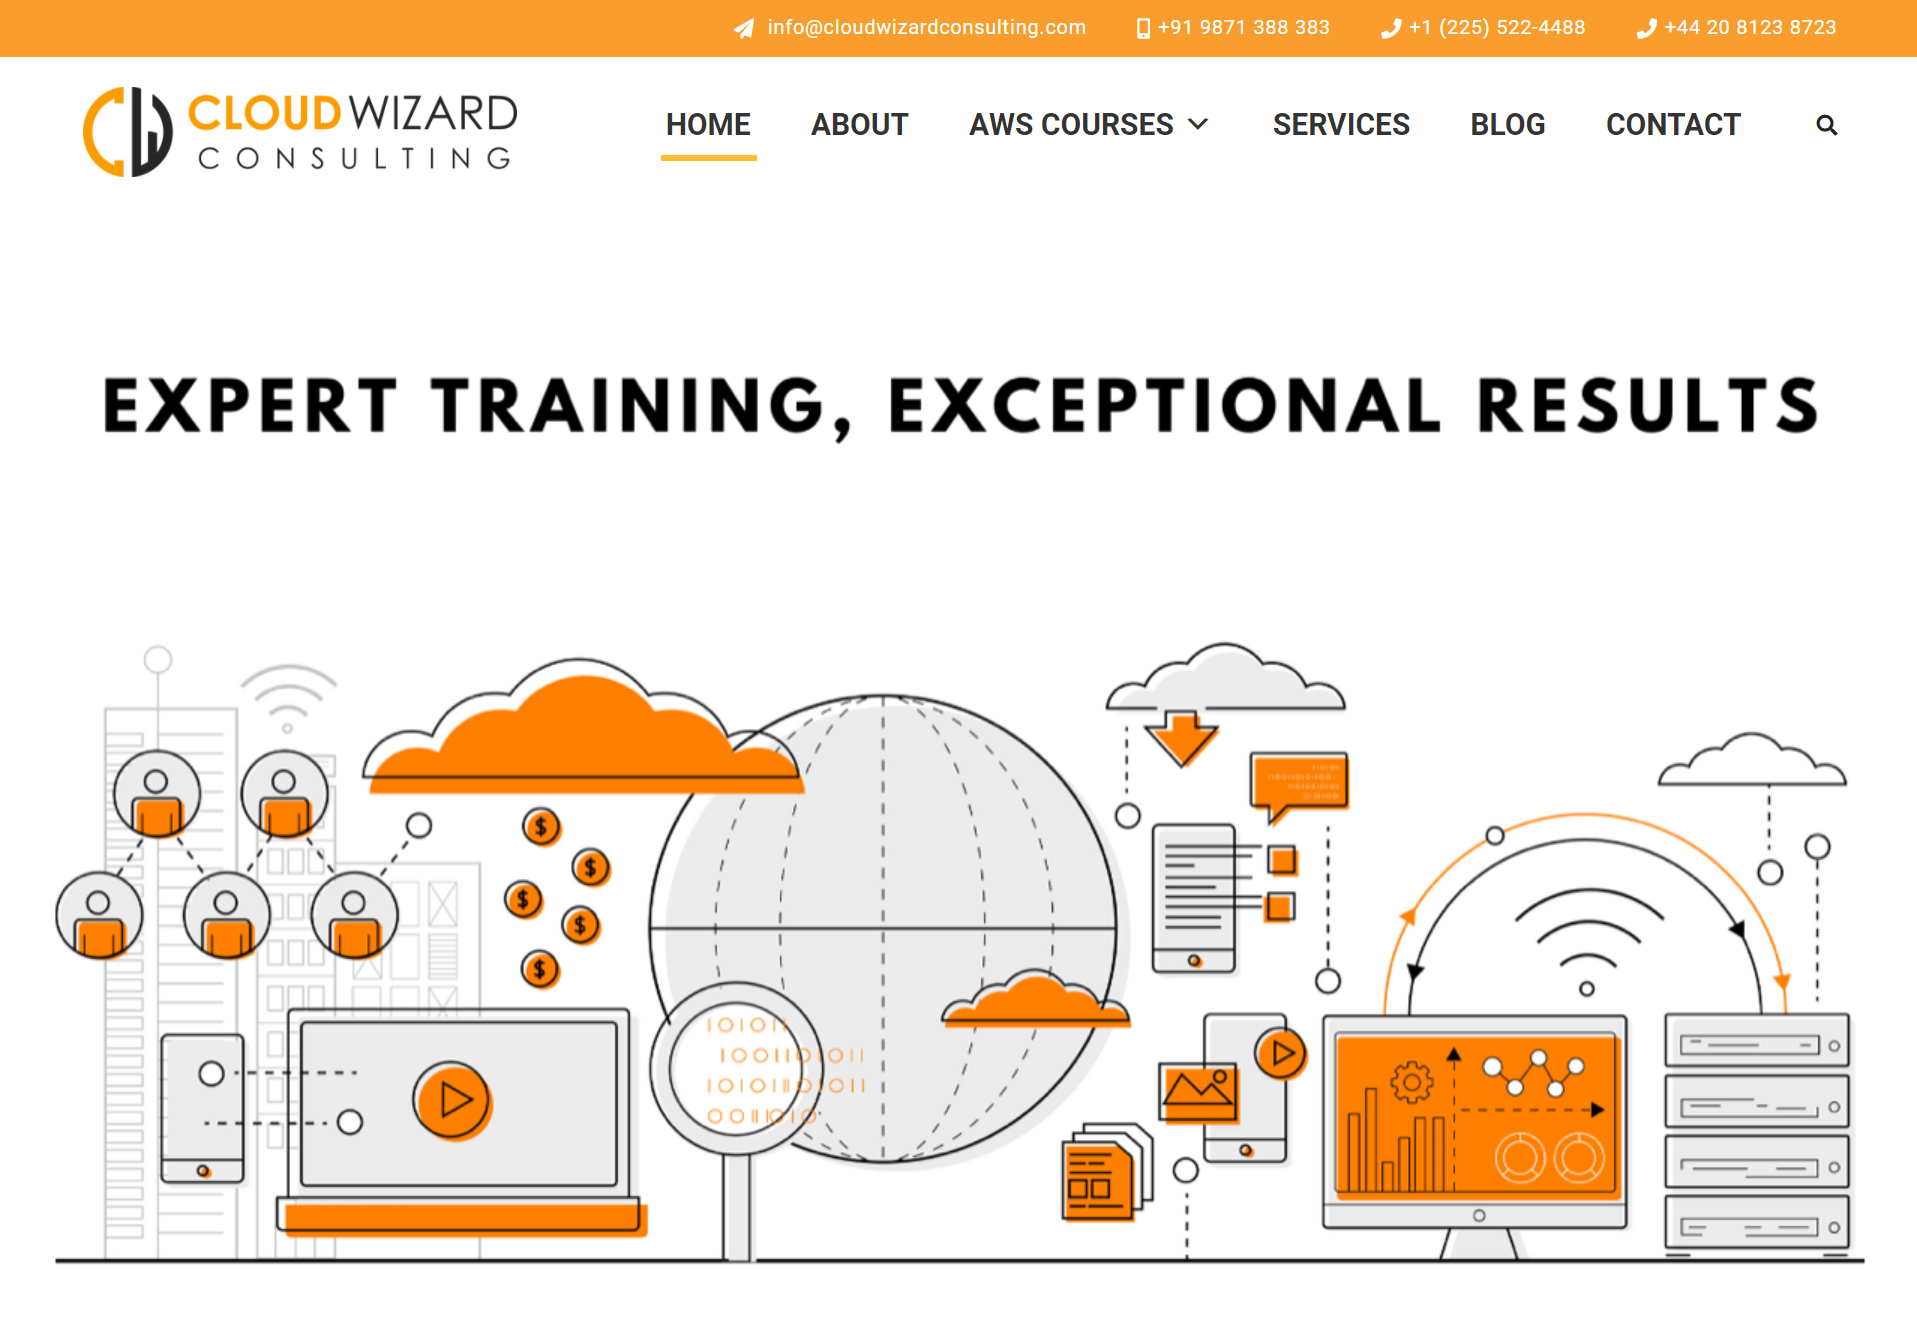 Cloud Wizard Consulting